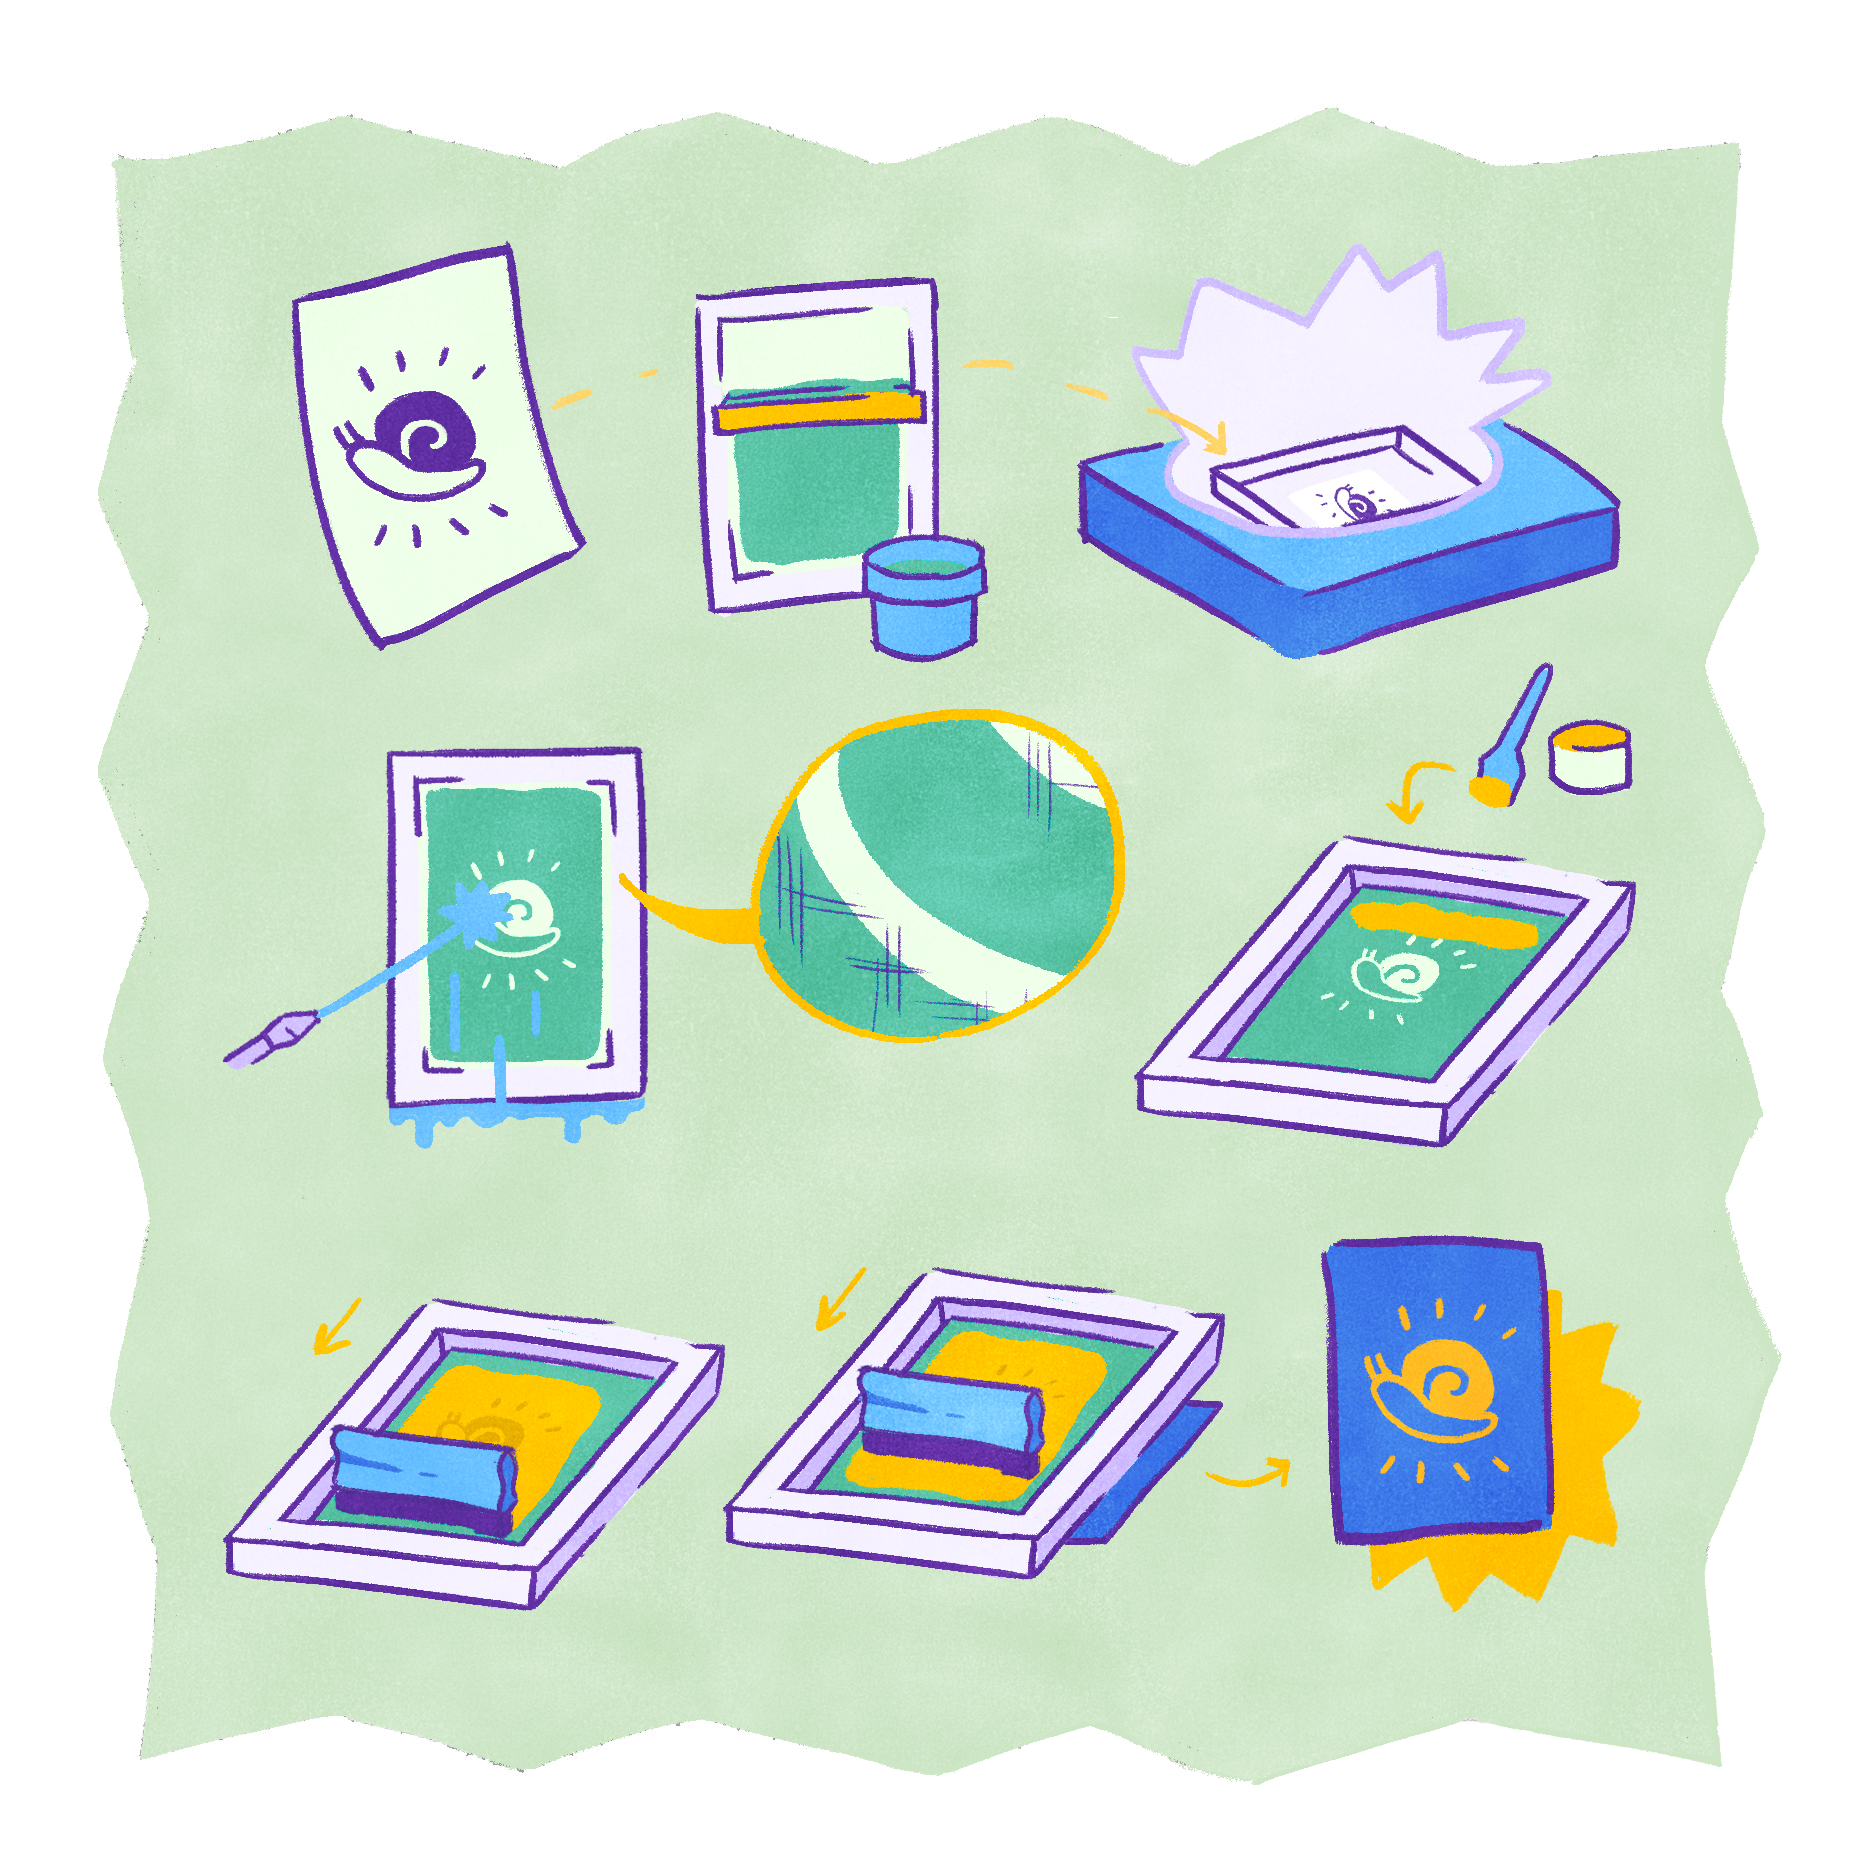 Illustration showing the steps of screen printing. The background is light green and the objects are purple and blue.